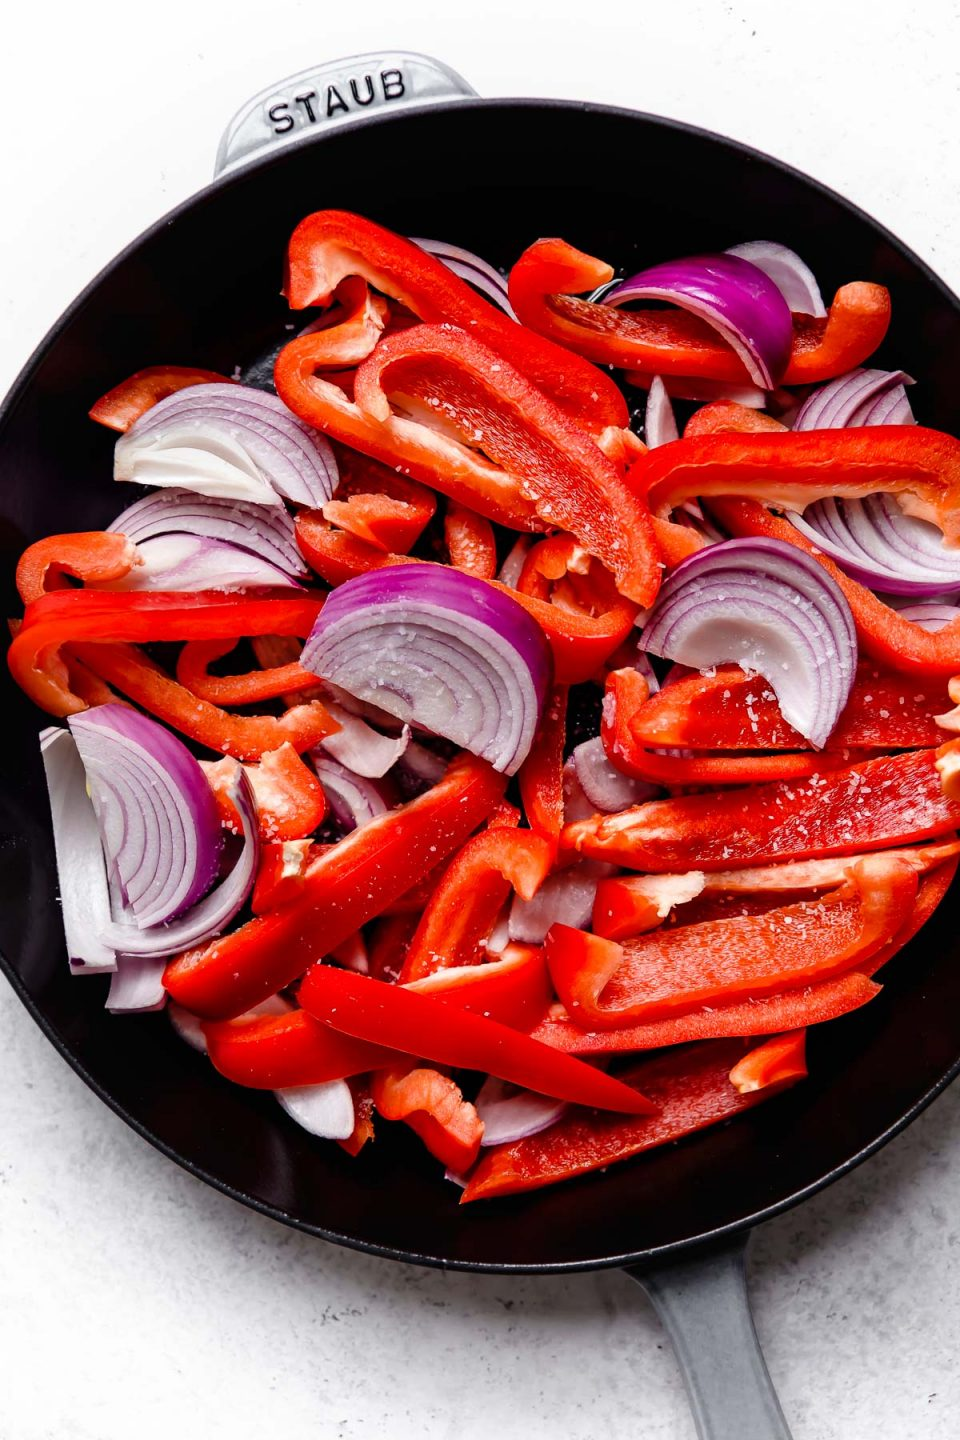 How to make vegetarian red curry step 2: Lightly charring peppers & onions in a skillet.